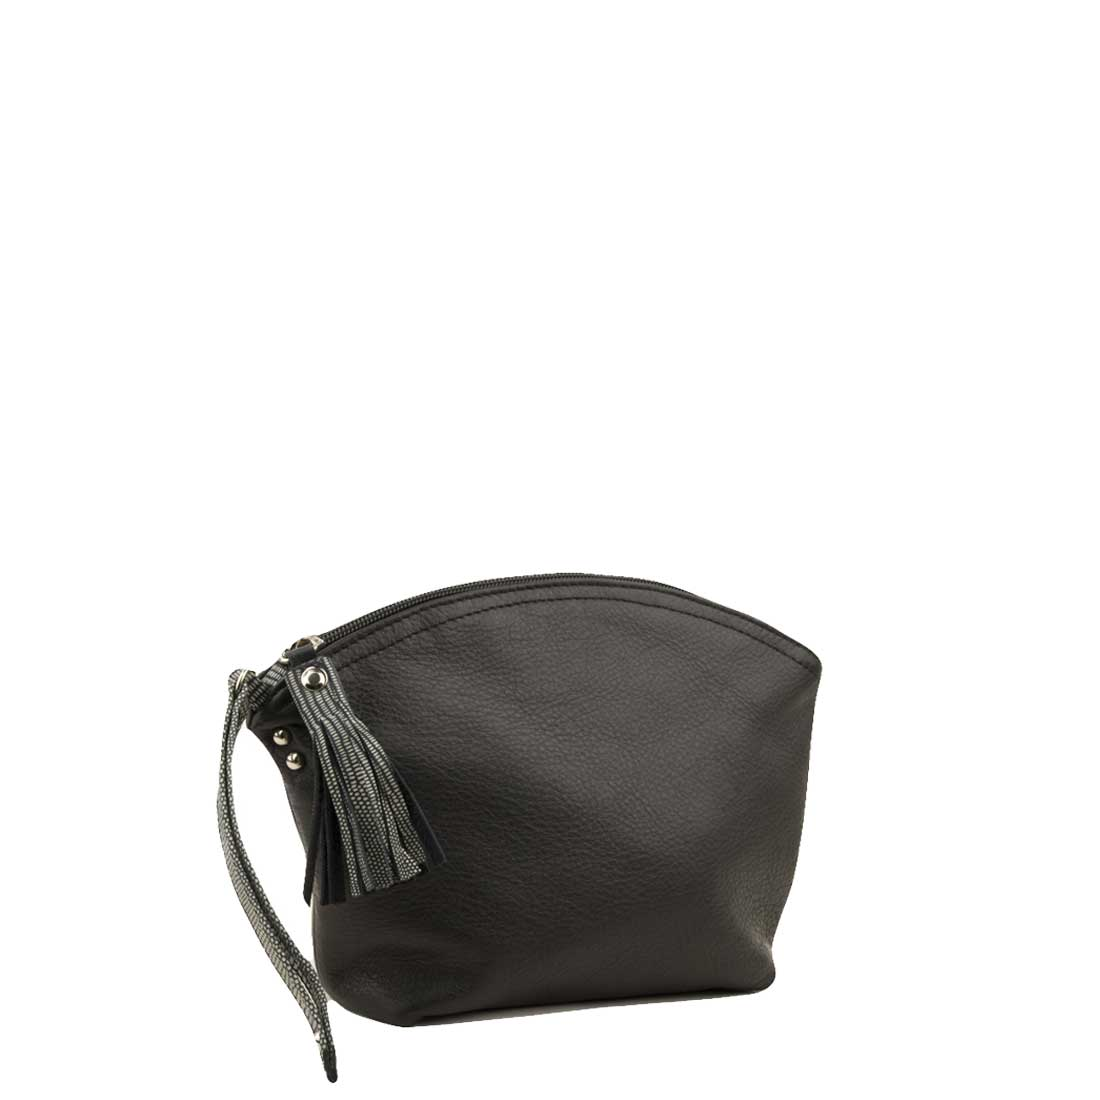 Wrist Bag in Black